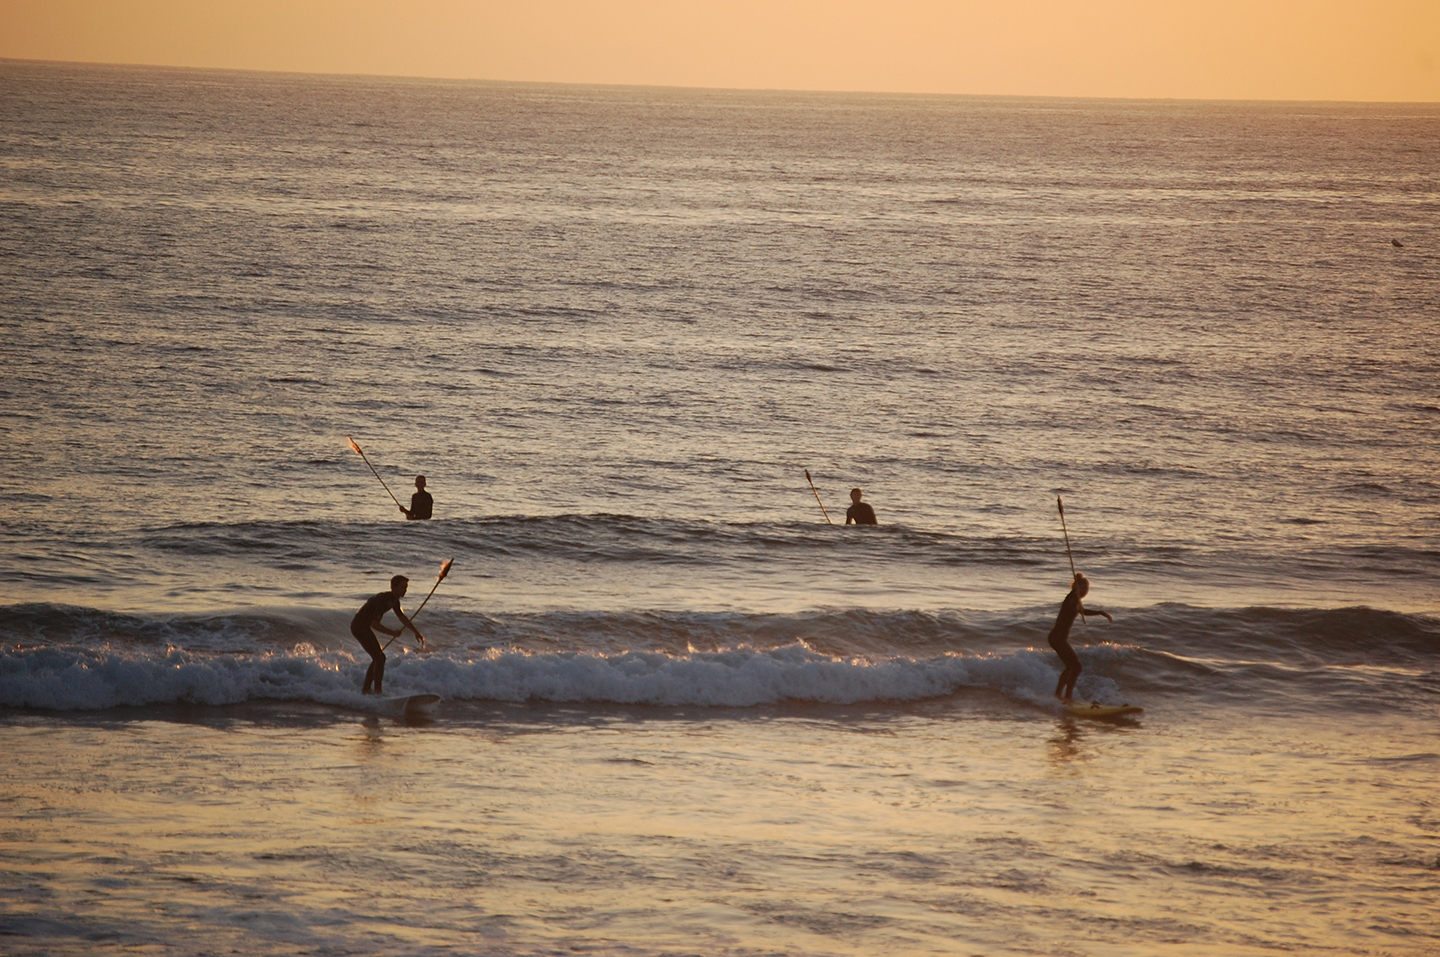 The evening ends at sunset with lifeguards surfing ashore carrying tiki torches. Photo by Bianca Kaplanek